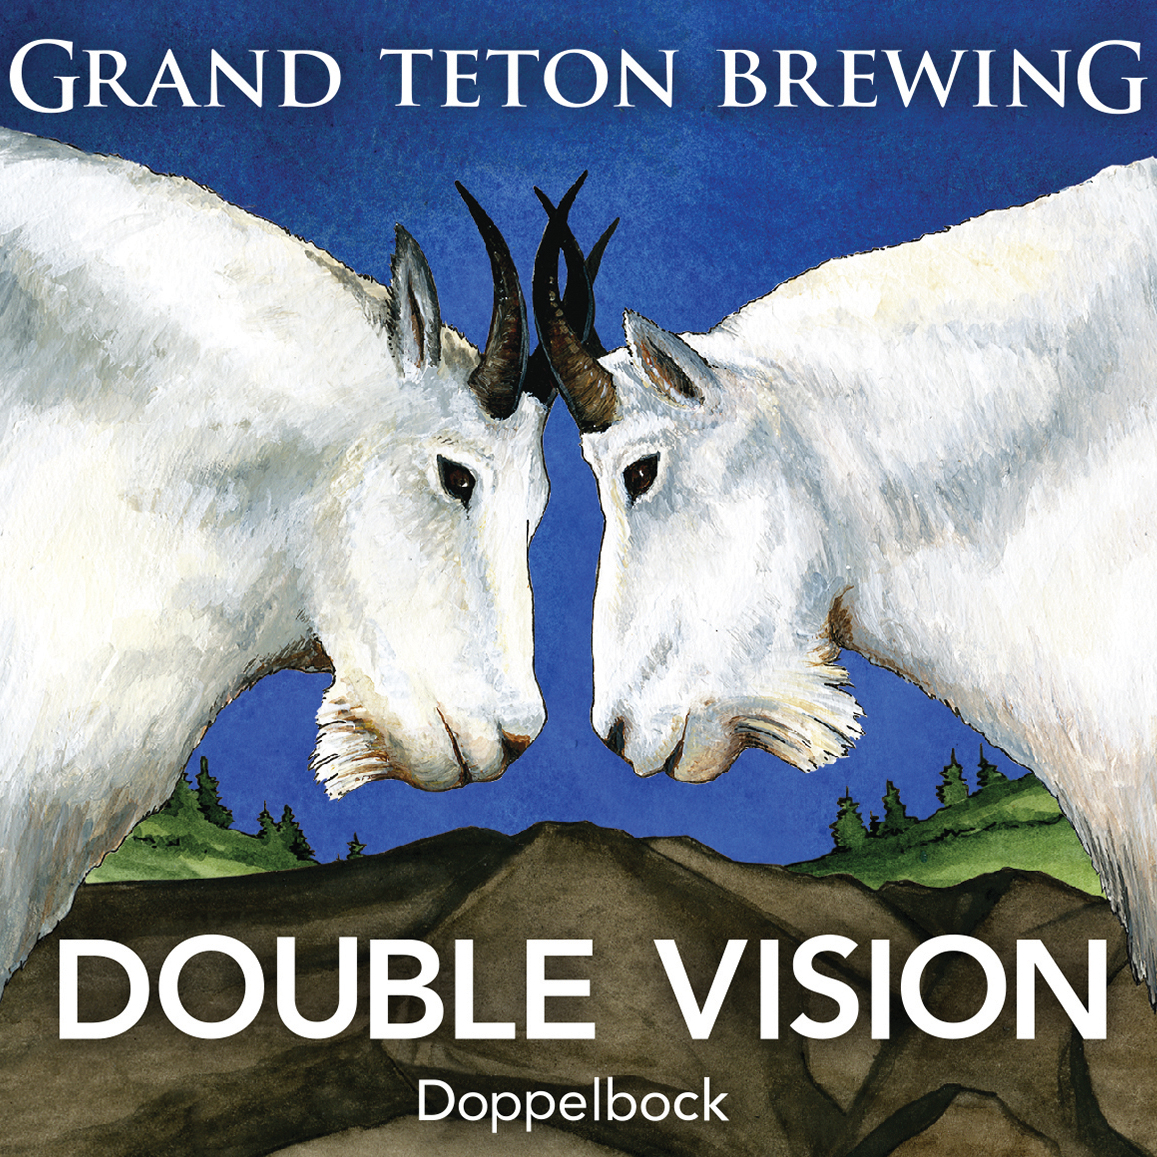 Idaho: Grand Teton Double Vision Doppelbock